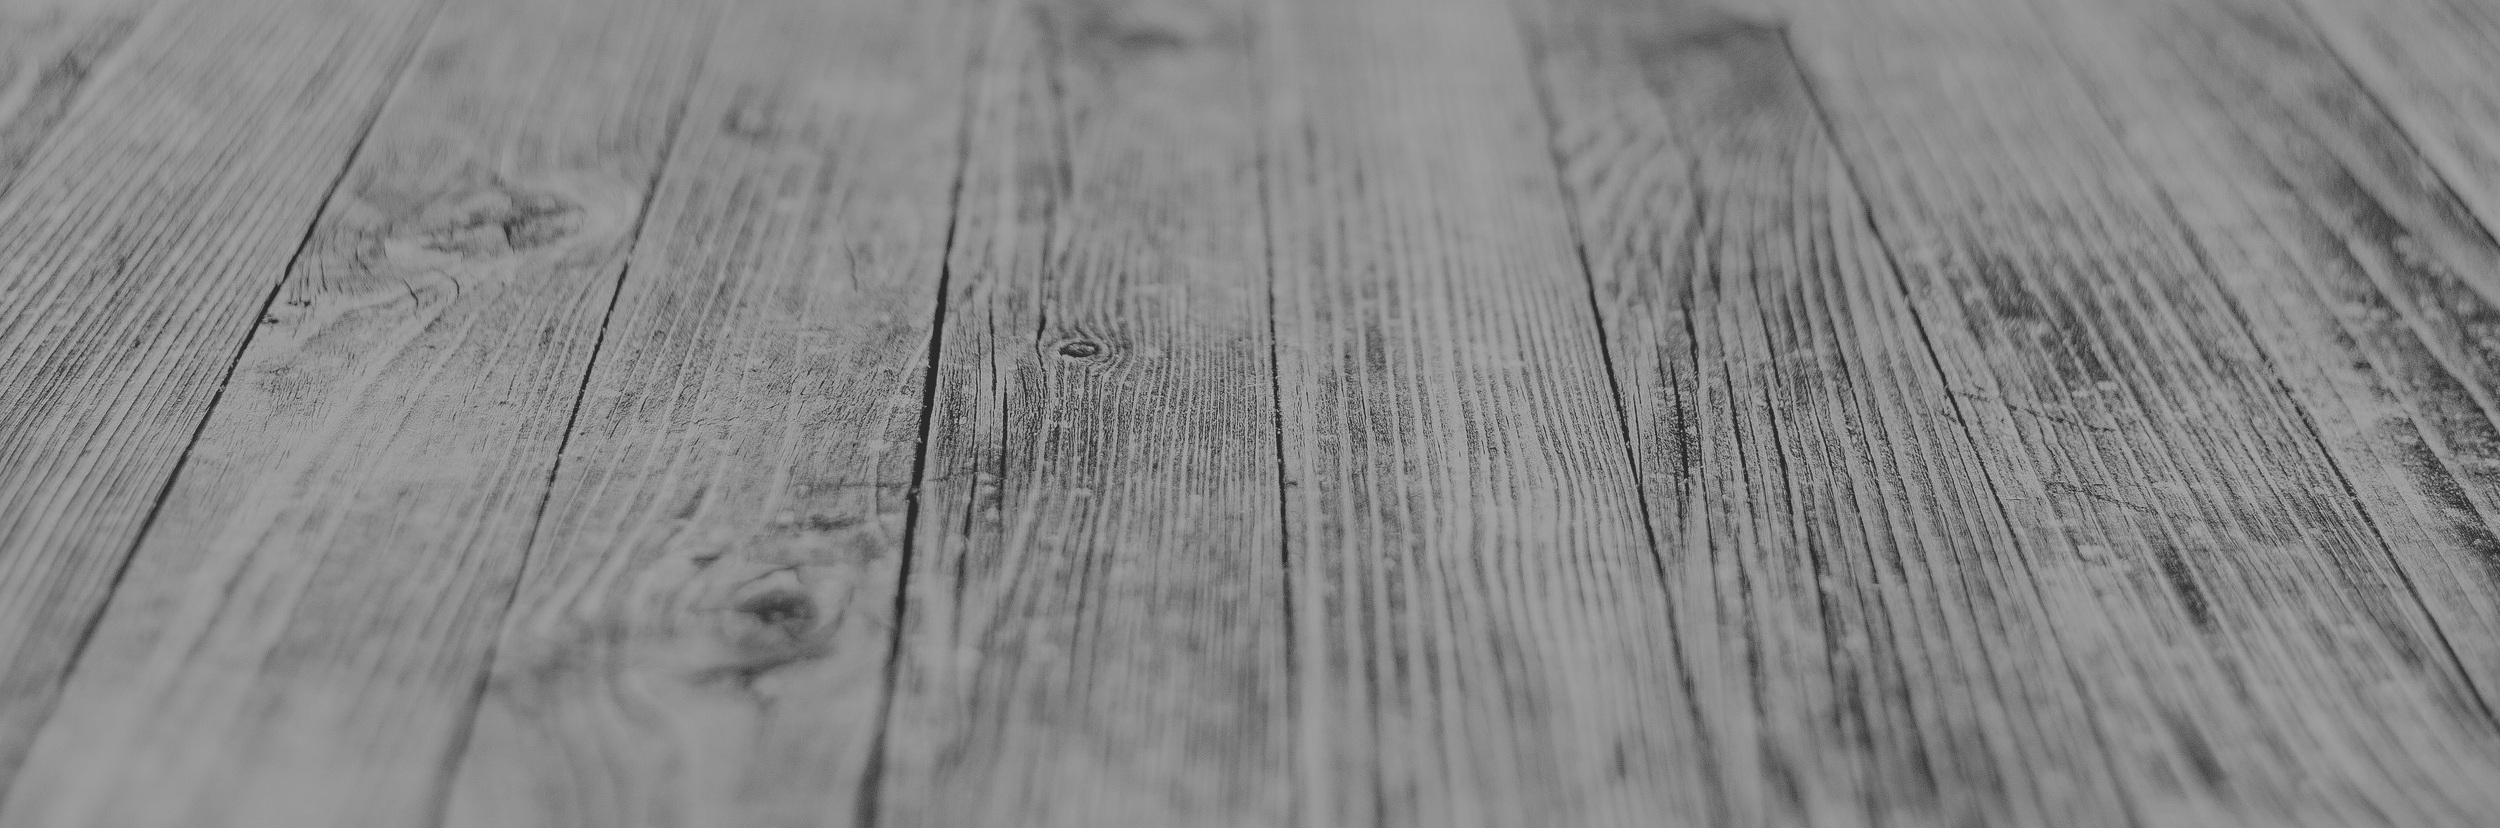 We Can Provide All of Your Flooring Needs - Including Carpet, Area Rugs, Laminate Flooring, Vinyl, Wood Planking, and PVC Tiles